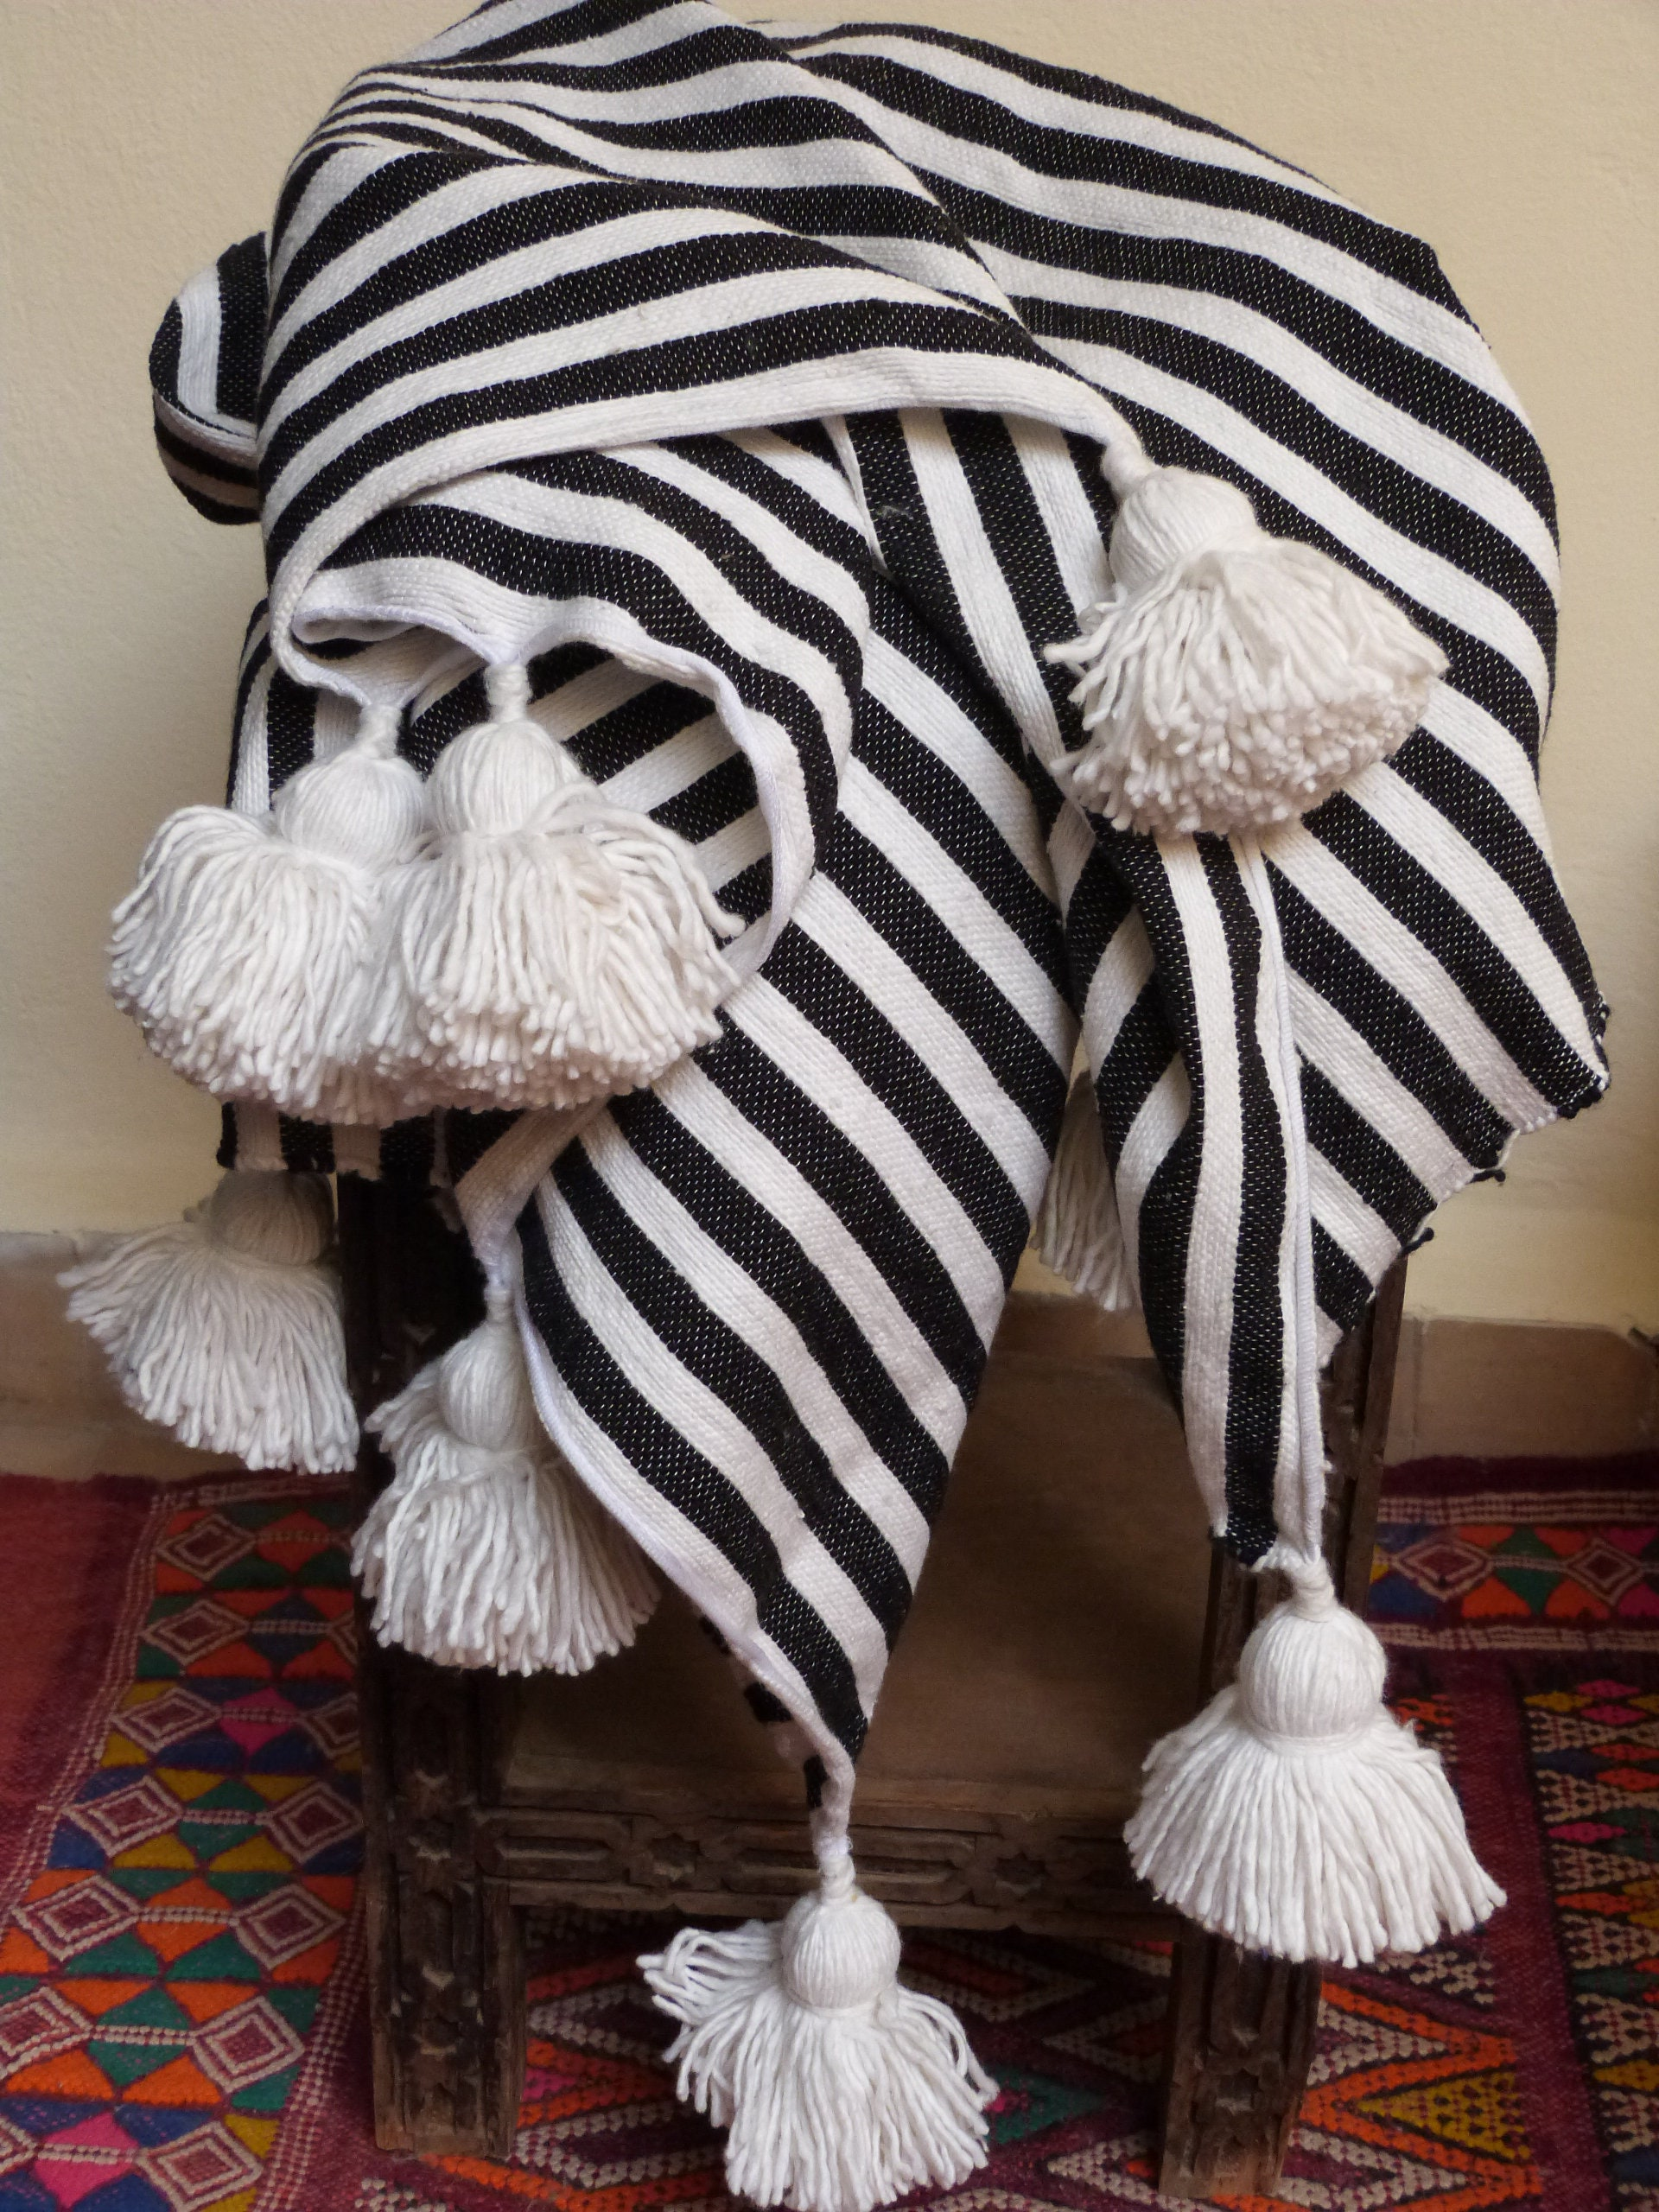 Home Décor Home & Garden 100% Cotton Morocco Throw ~ Black And White Stripe With Tassel ~ Handwoven